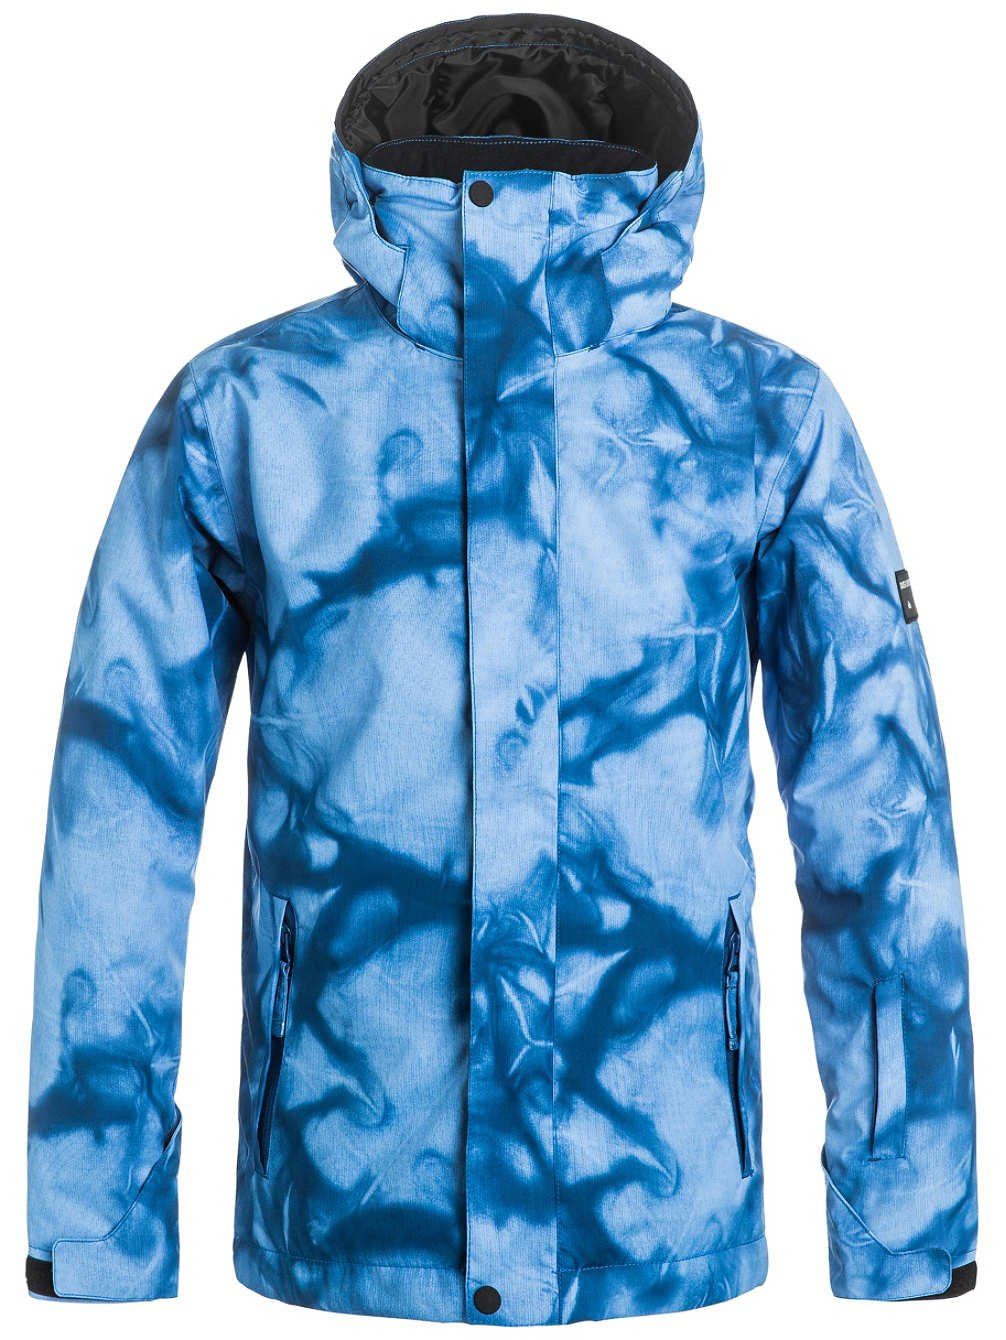 Quiksilver Mission Youth, Giacca Bambina DC Shoes EQBTJ03037